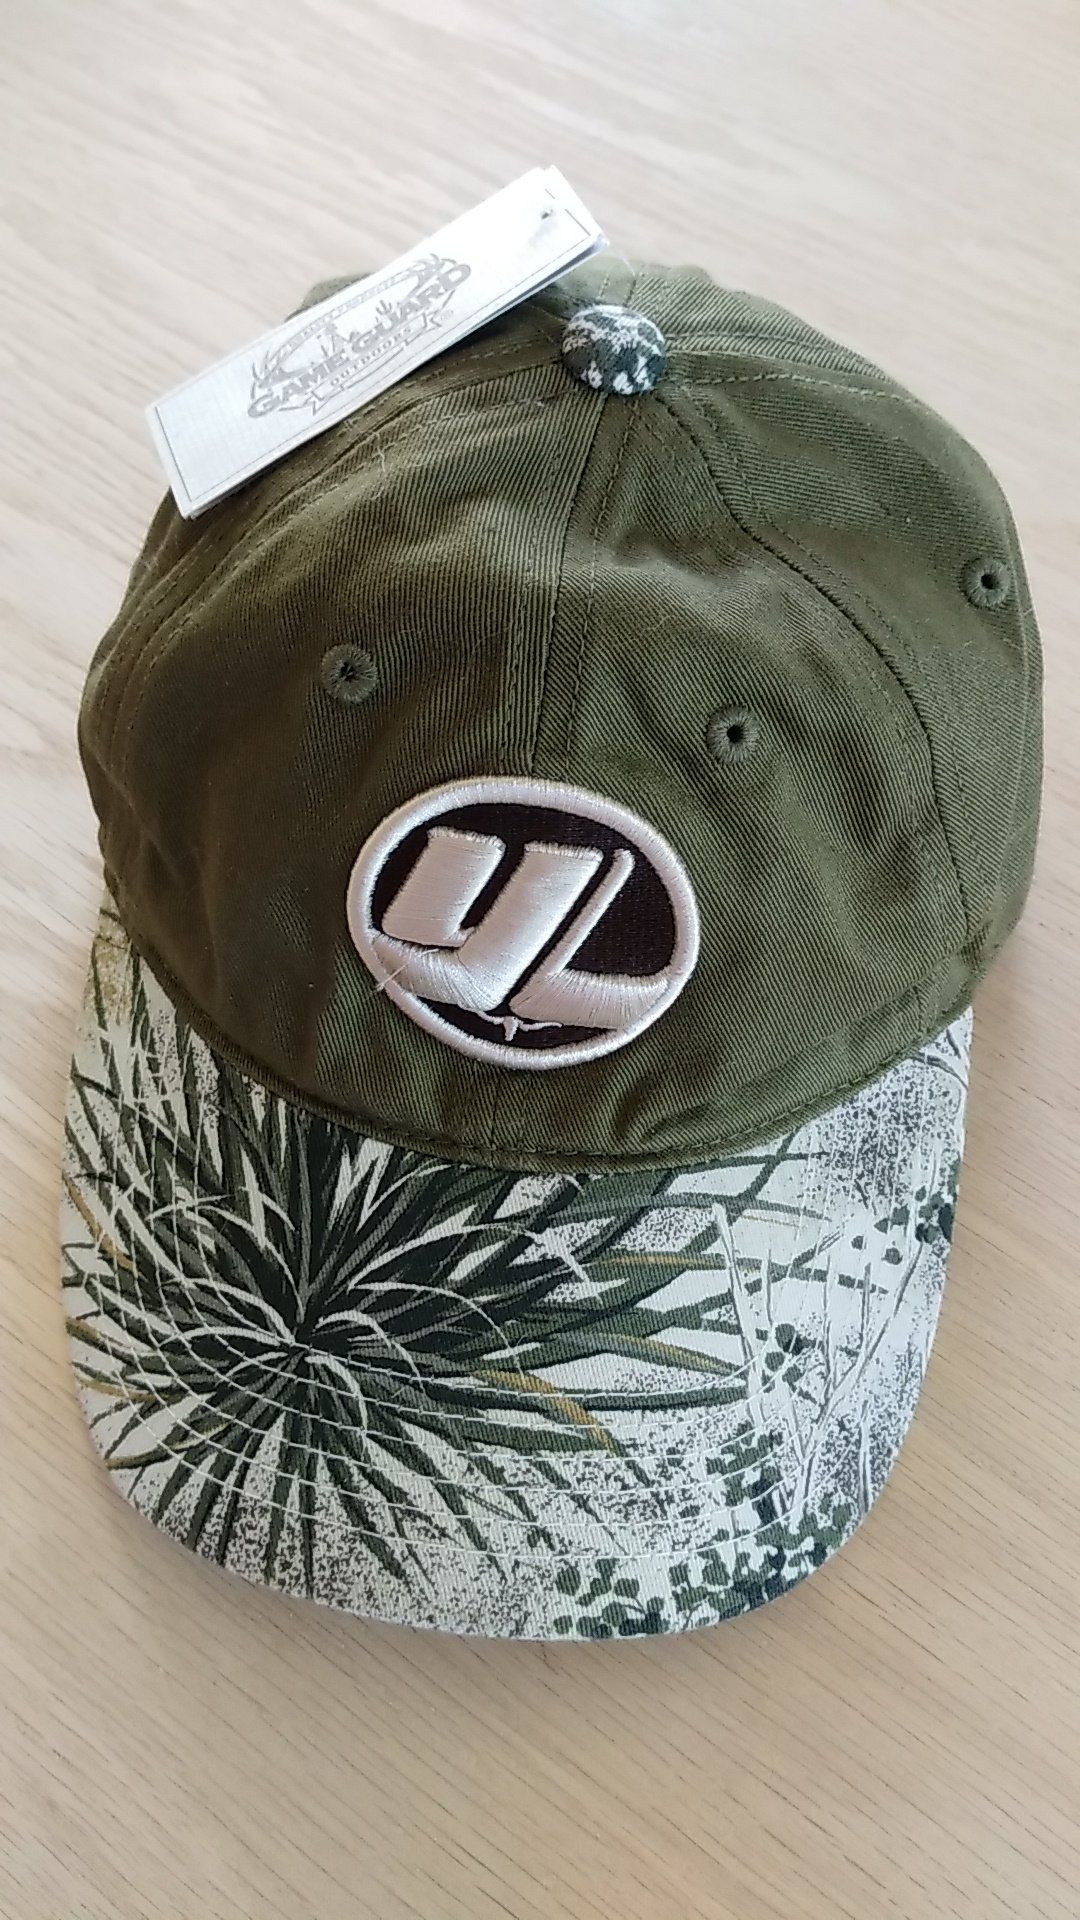 Gameguard Camo Olive cap One size fits all. Gameguard Camo Olive cap One  size fits d0363ab3521